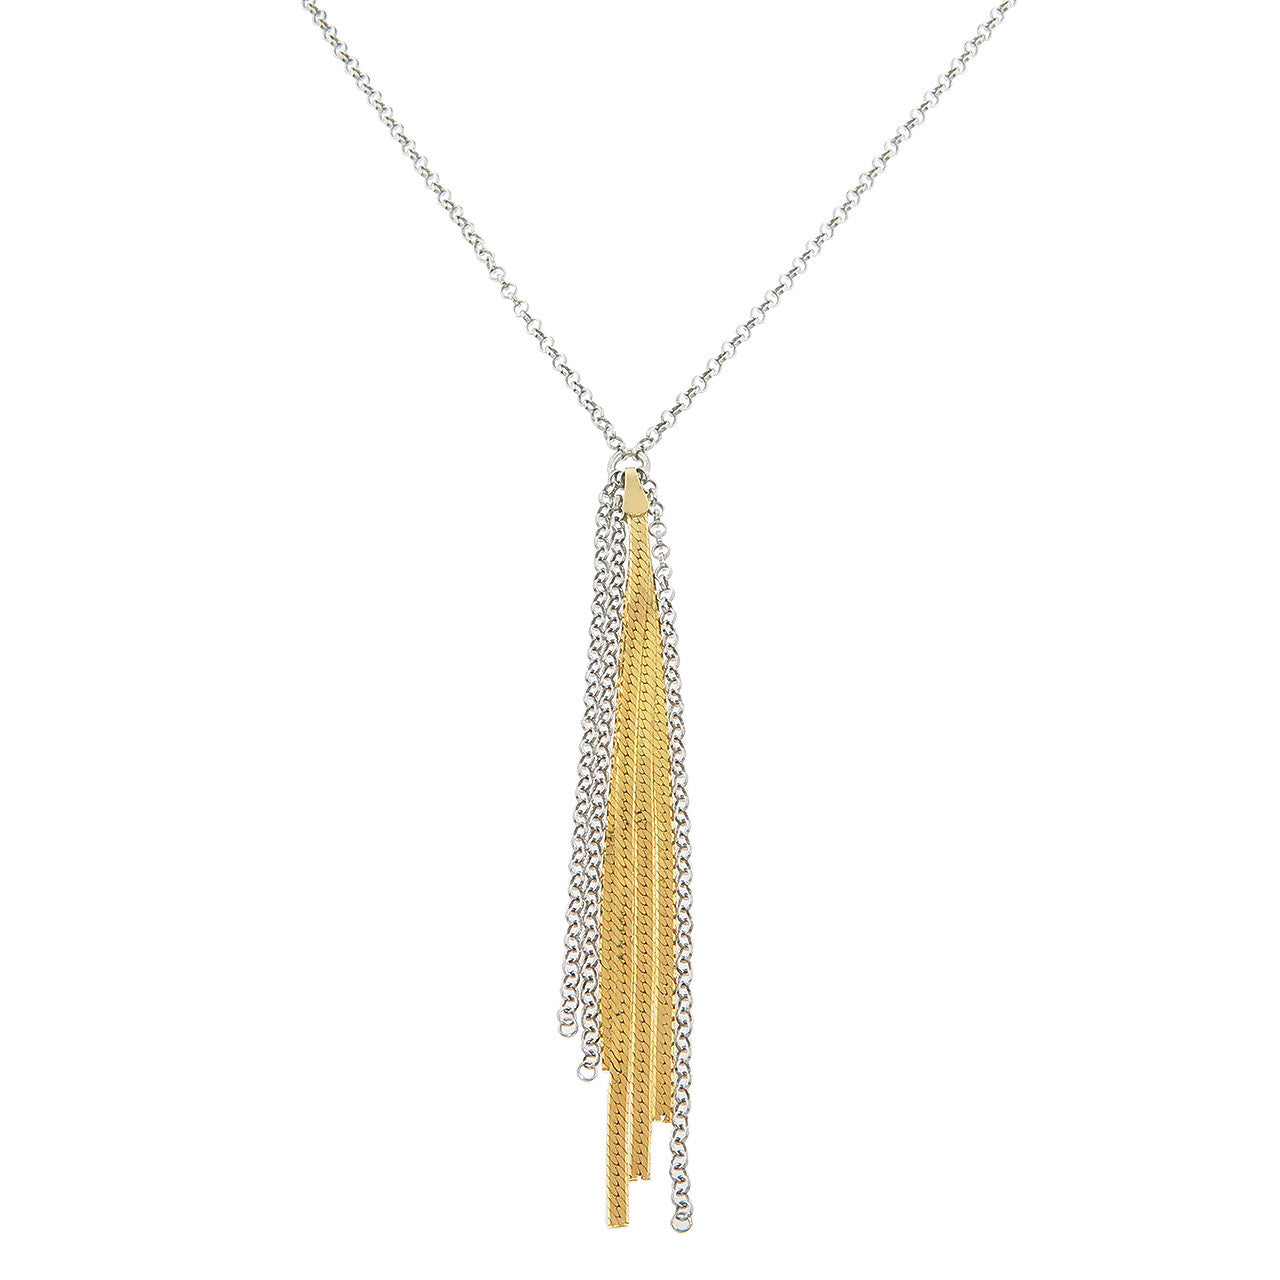 Italian 14k Gold plated Solid Sterling Silver Diamond Cut Tassle Necklace